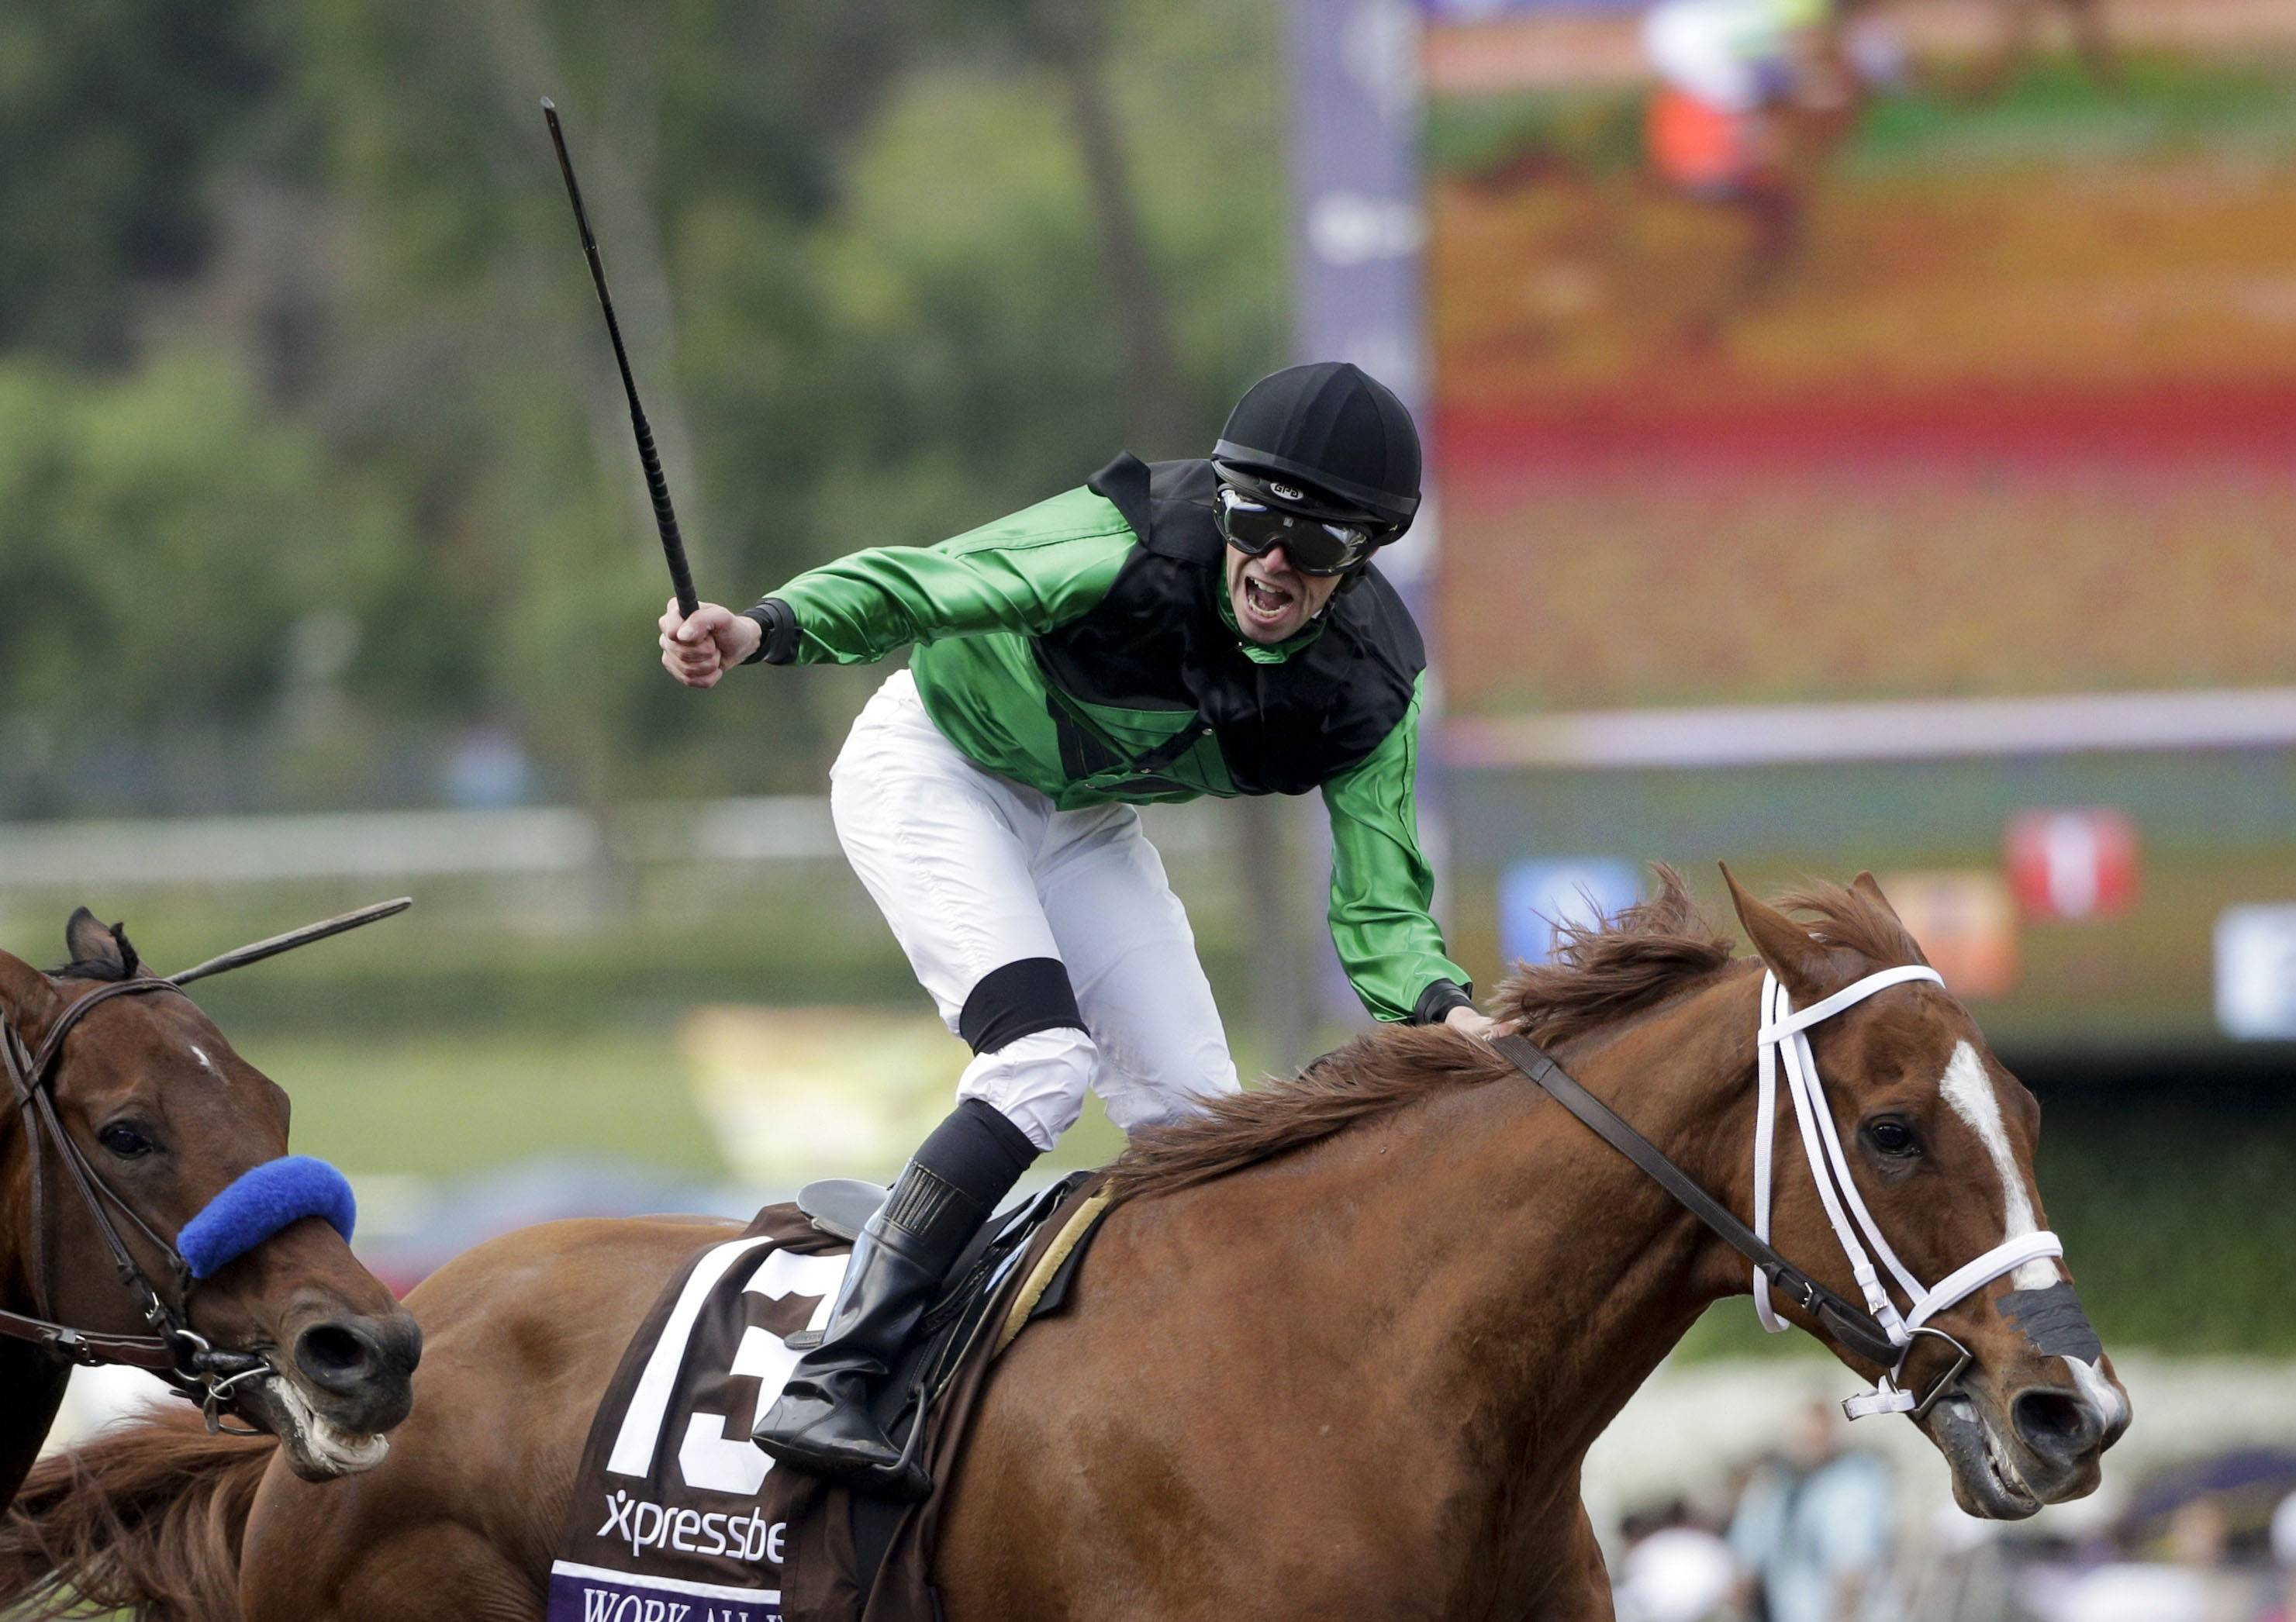 Jockey Florent Geroux celebrates after riding Work All Week to victory in the Breeders' Cup Sprint horse race at Santa Anita Park, Saturday, Nov. 1, 2014, in Arcadia, Calif.